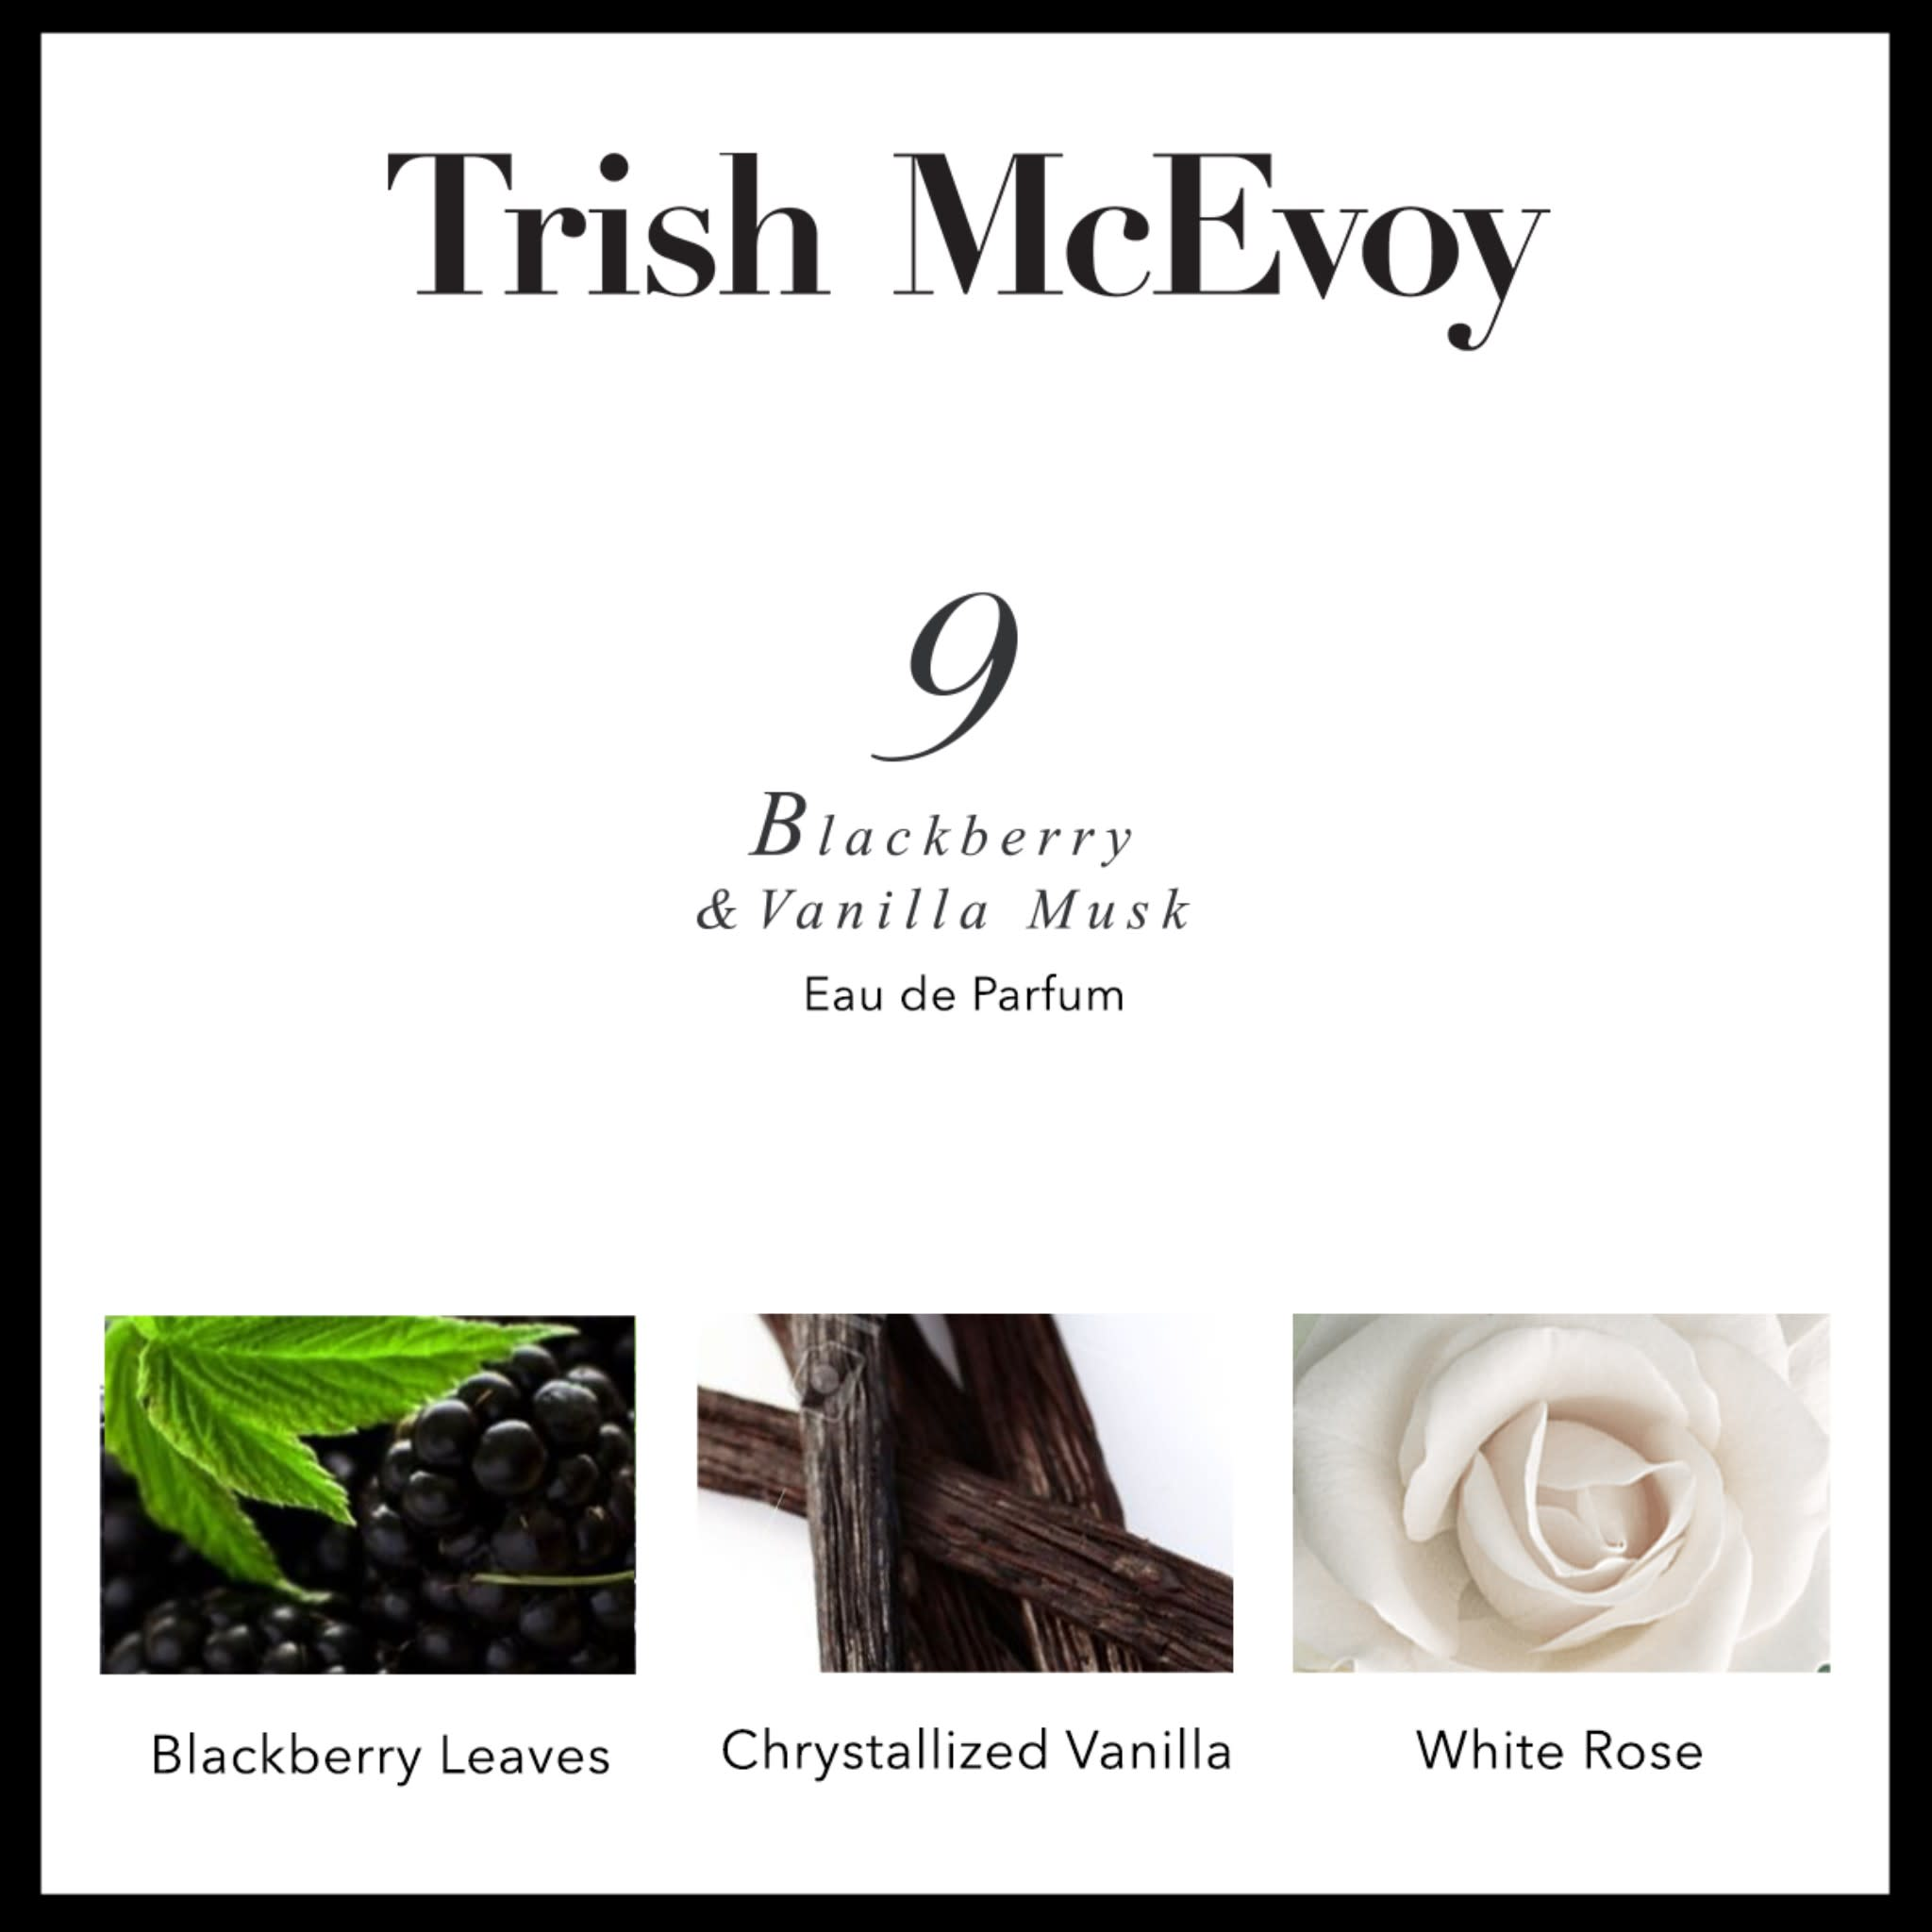 No. 9 Blackberry And Vanilla Musk Eau De Parfum